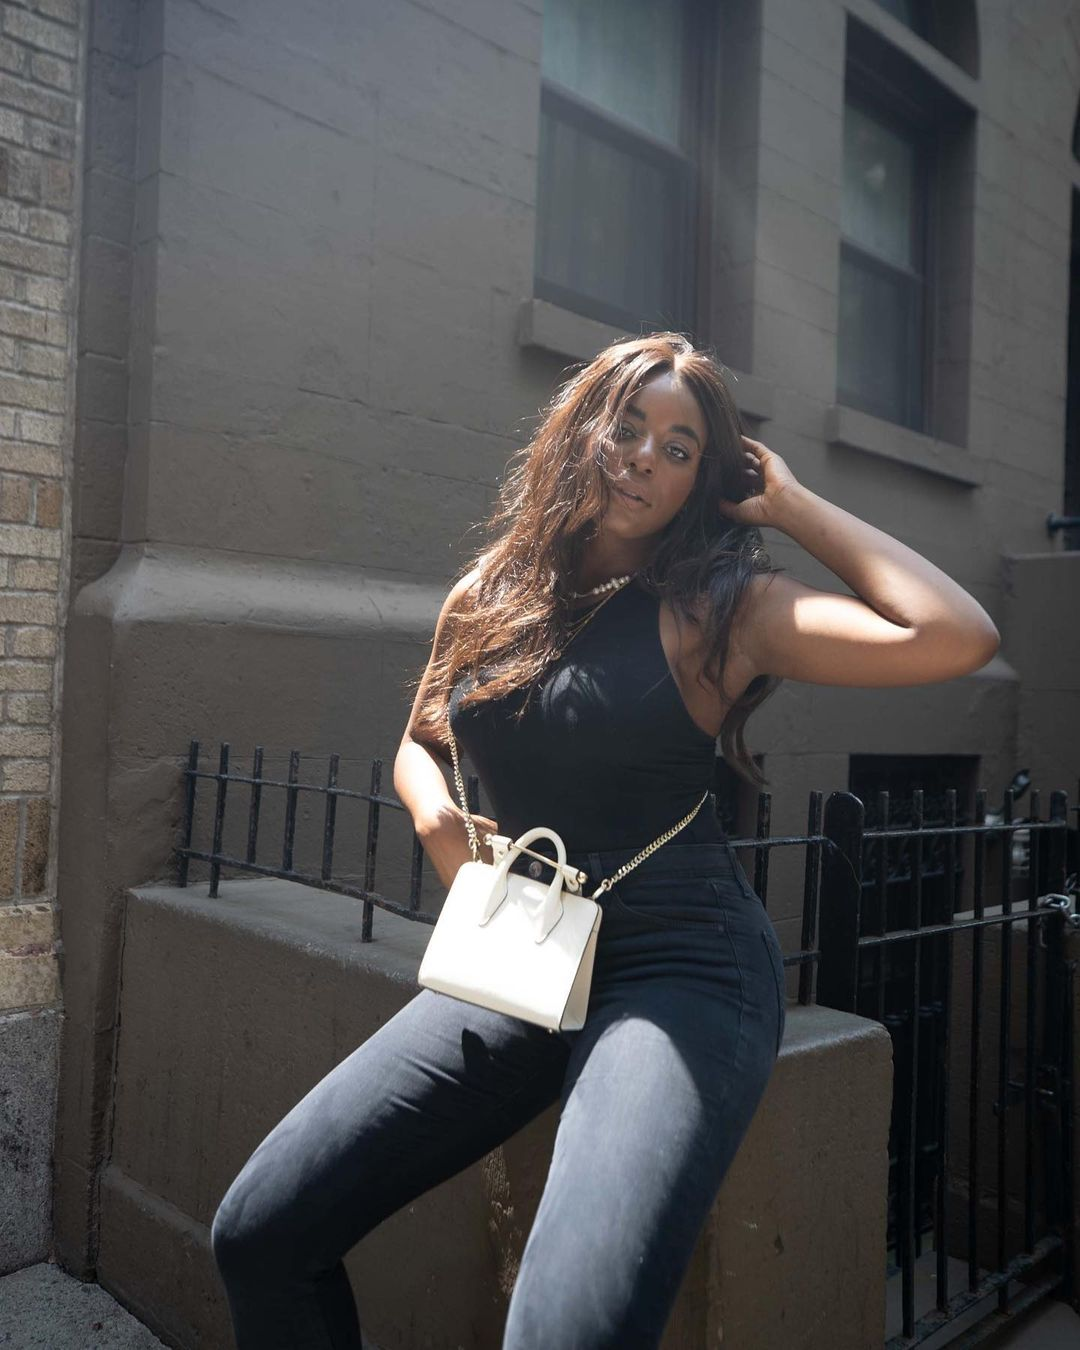 Kaye Bassey in a minimalist capsule wardrobe outfit with blank tank top, grey denim and a white tote bag